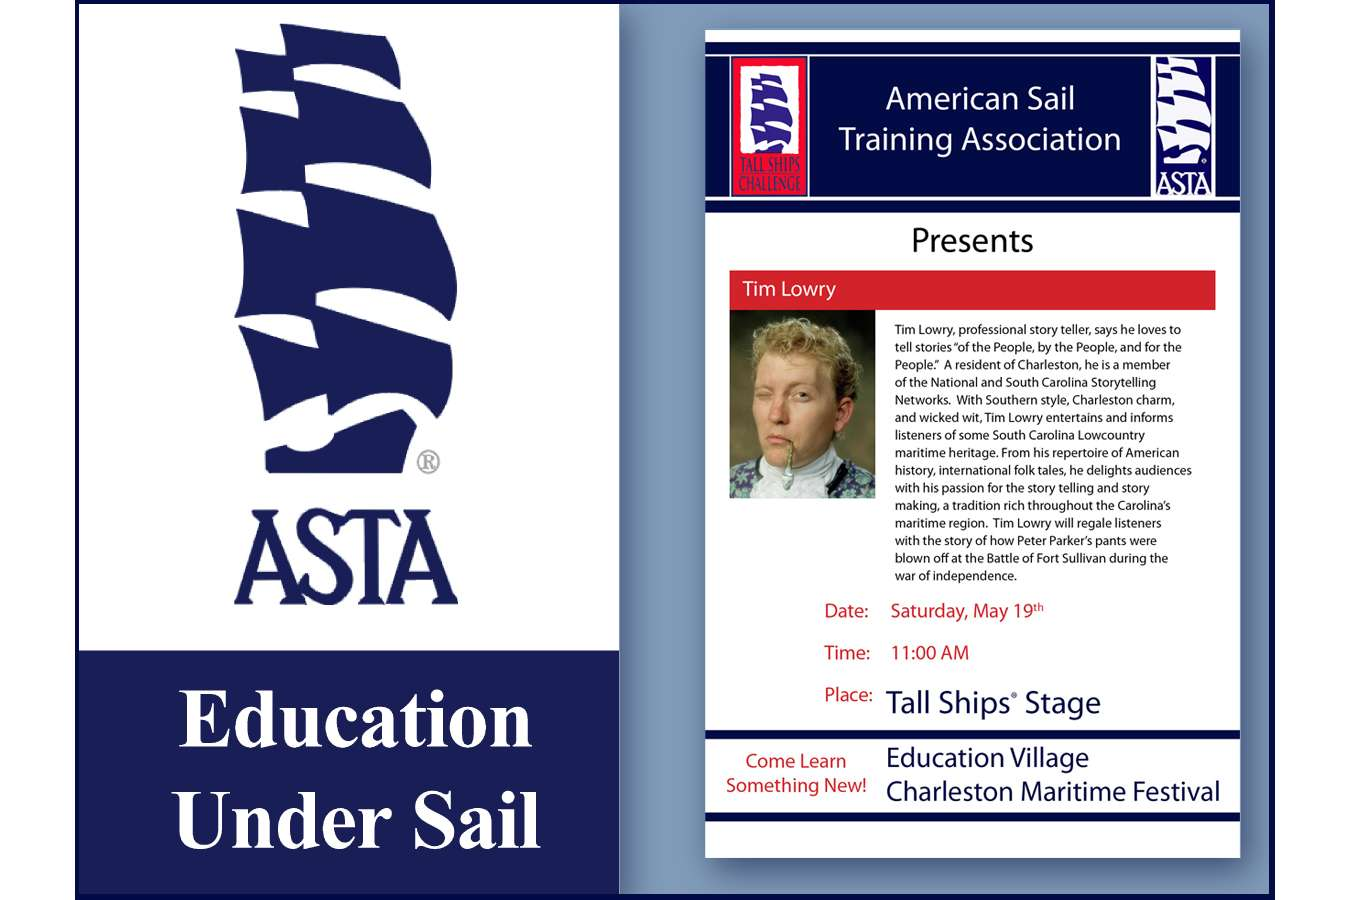 ASTA Event Posters : 3' x 5' flag banners and temporary easel mounted event performance signs